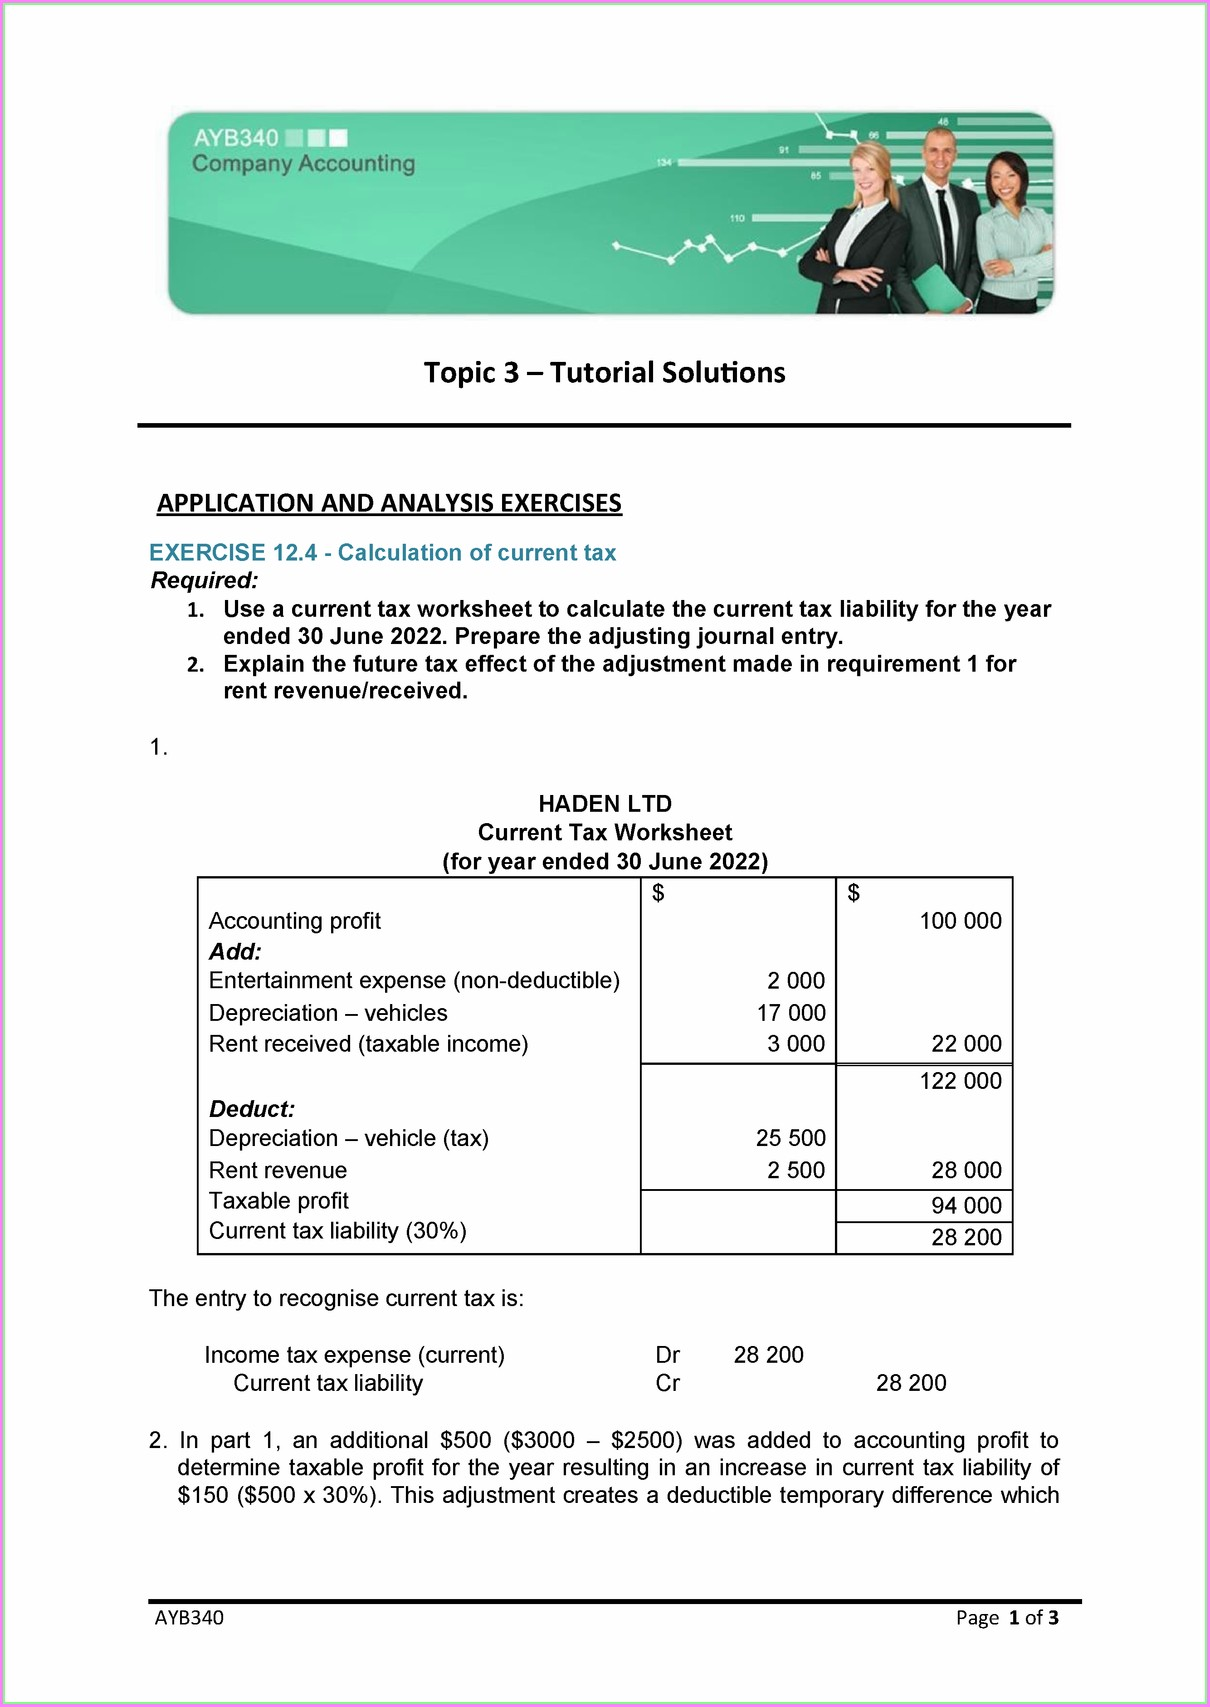 Deferred Tax Worksheet Movement During Year